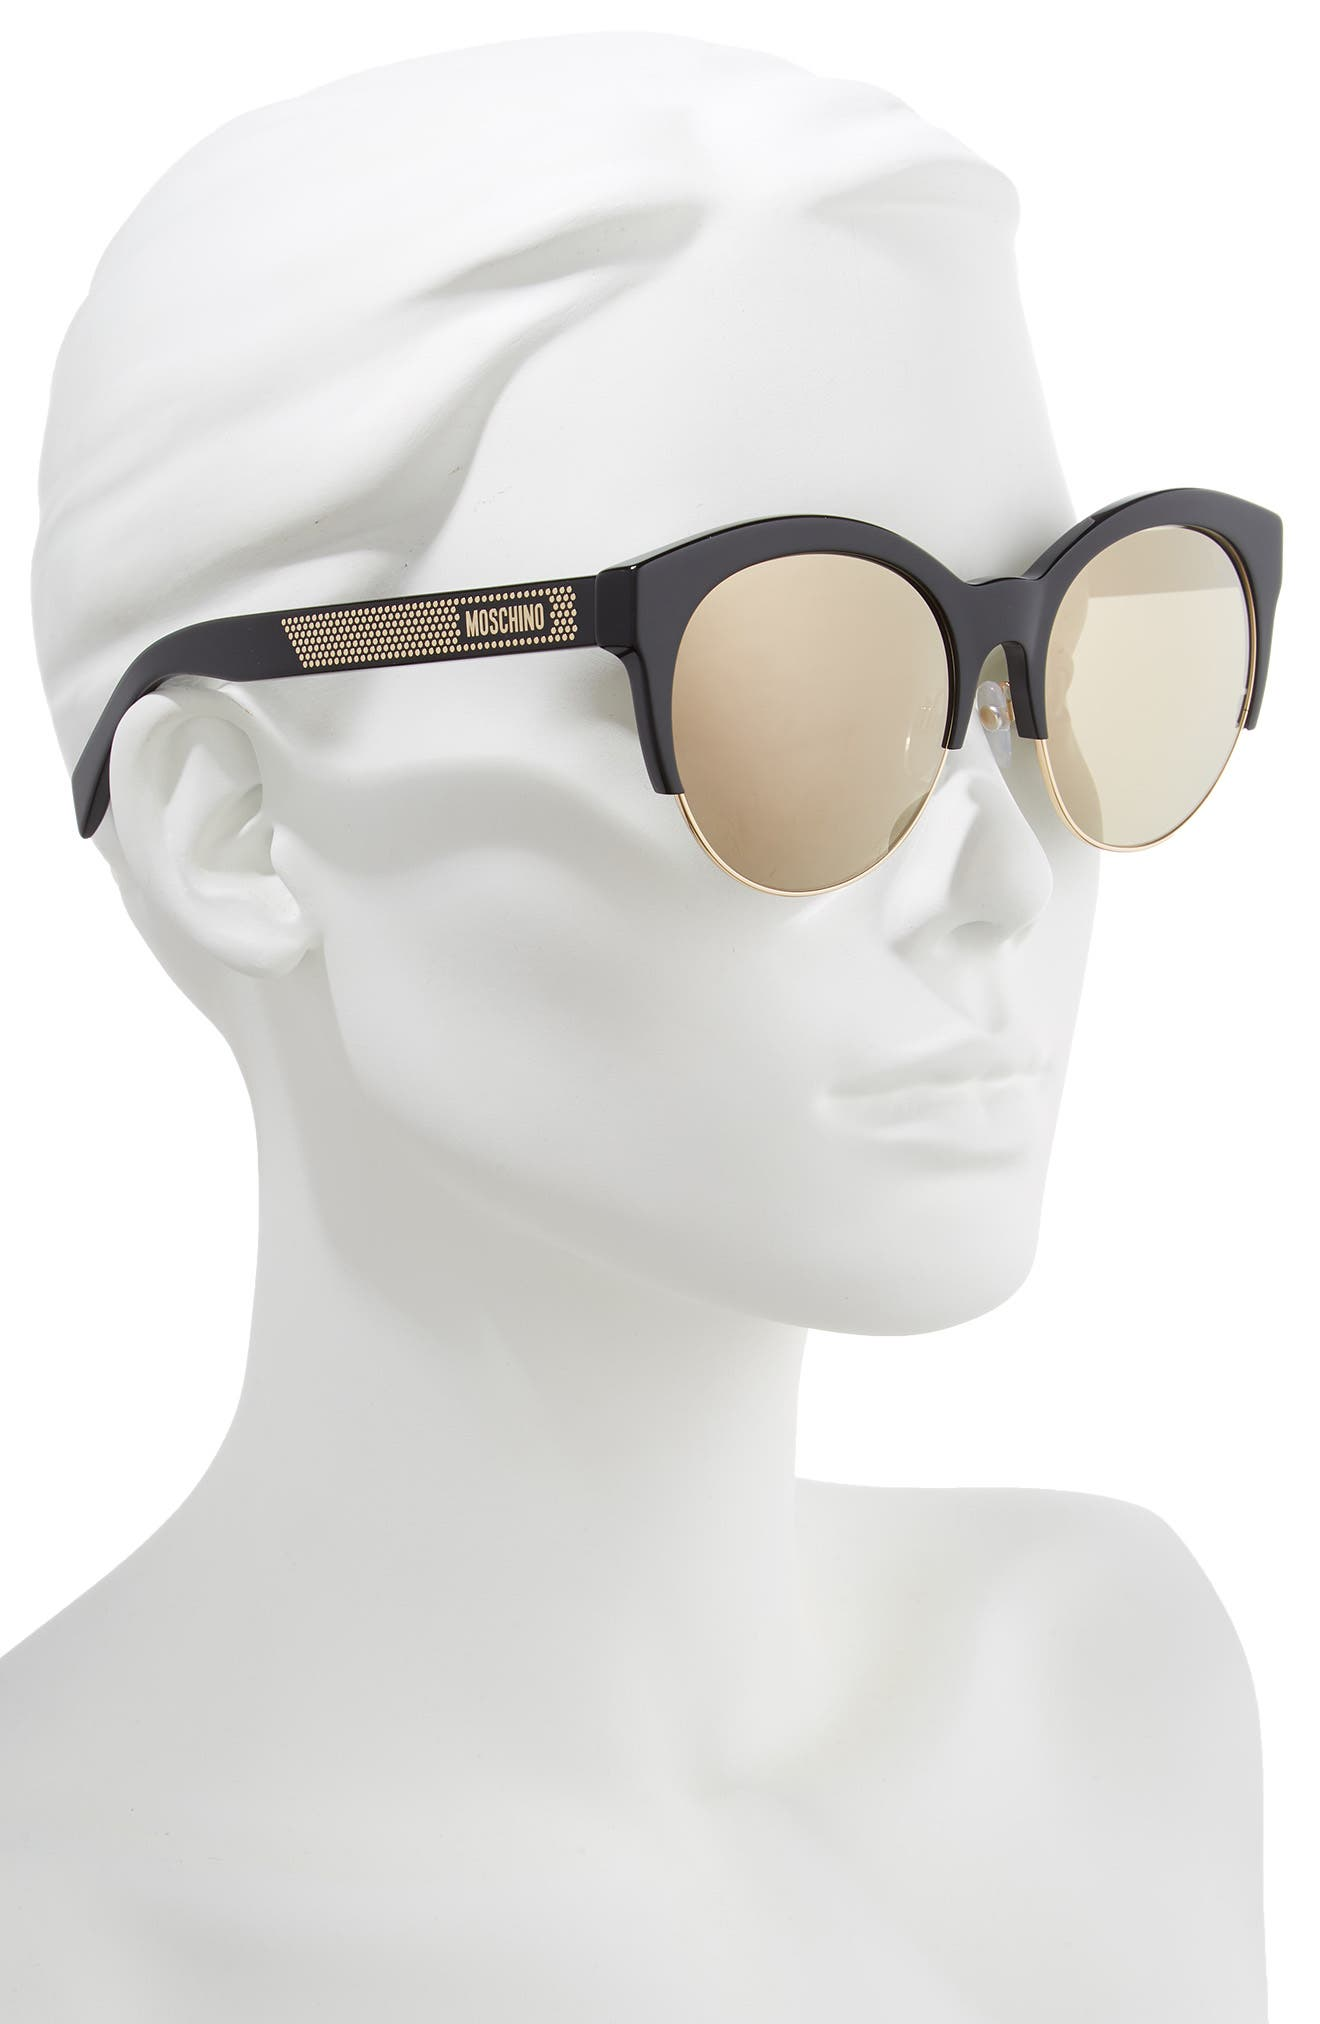 MOSCHINO, 56mm Special Fit Sunglasses, Alternate thumbnail 2, color, BLACK